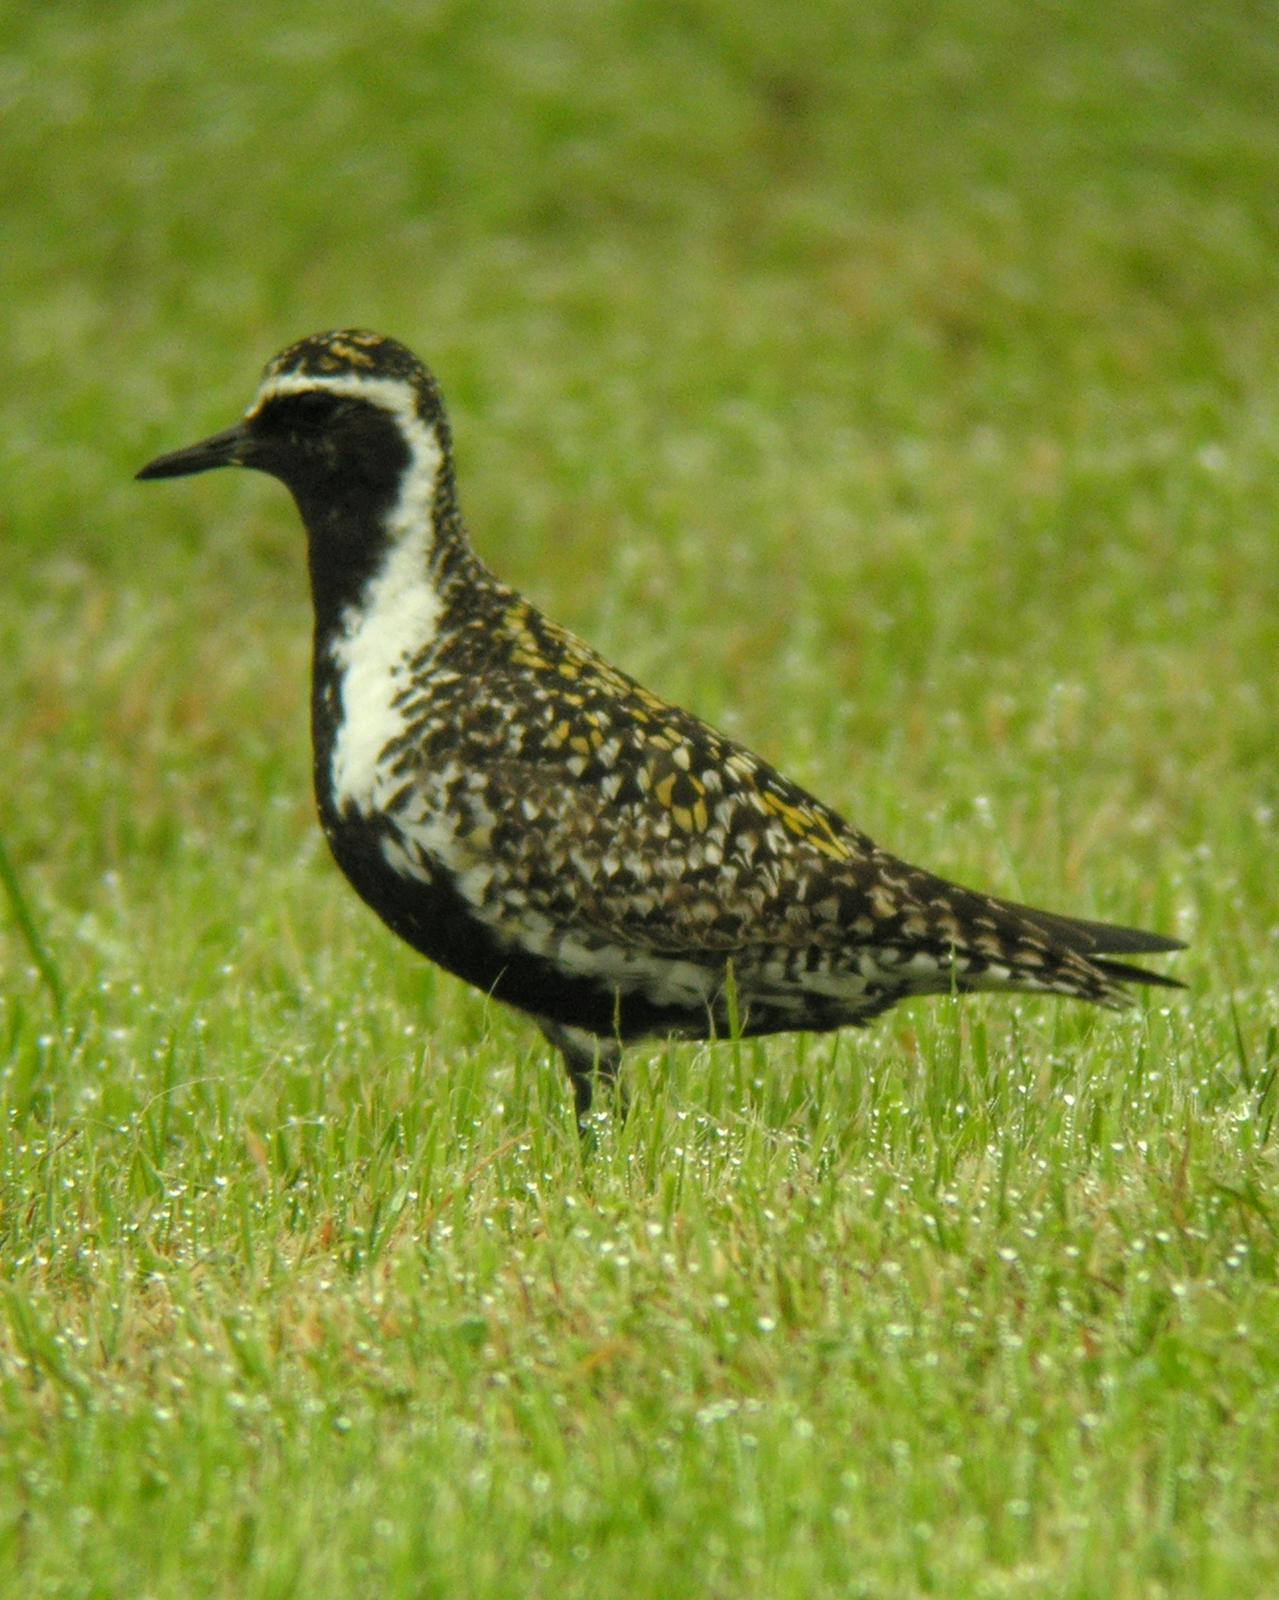 Pacific Golden-Plover Photo by Brennan Mulrooney